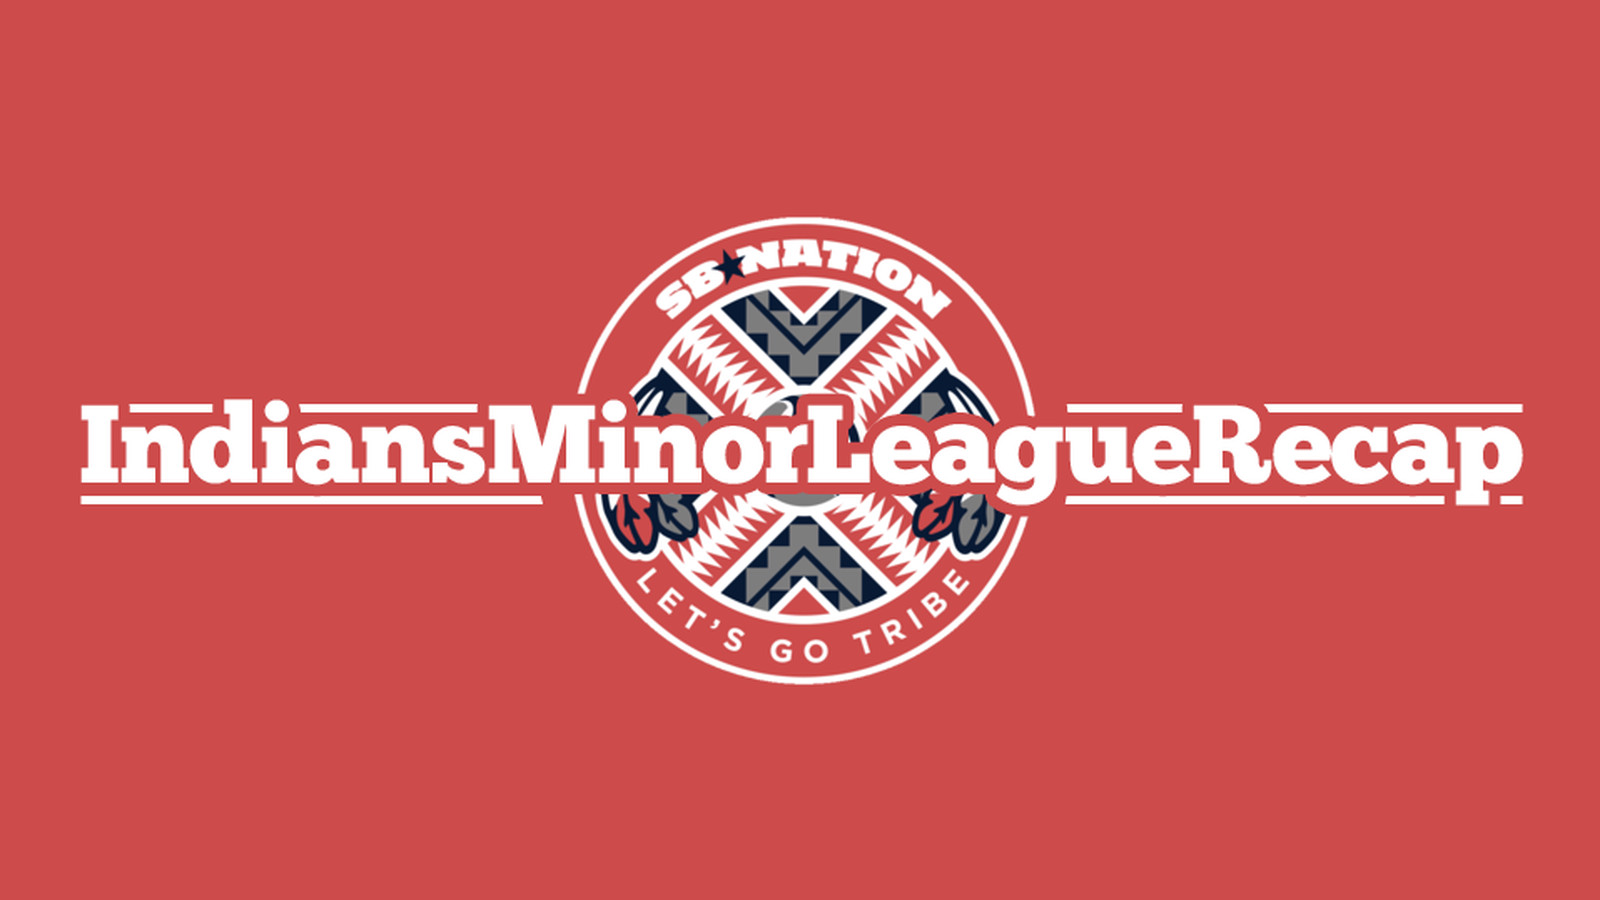 Lgt-minor_leagues.0.0